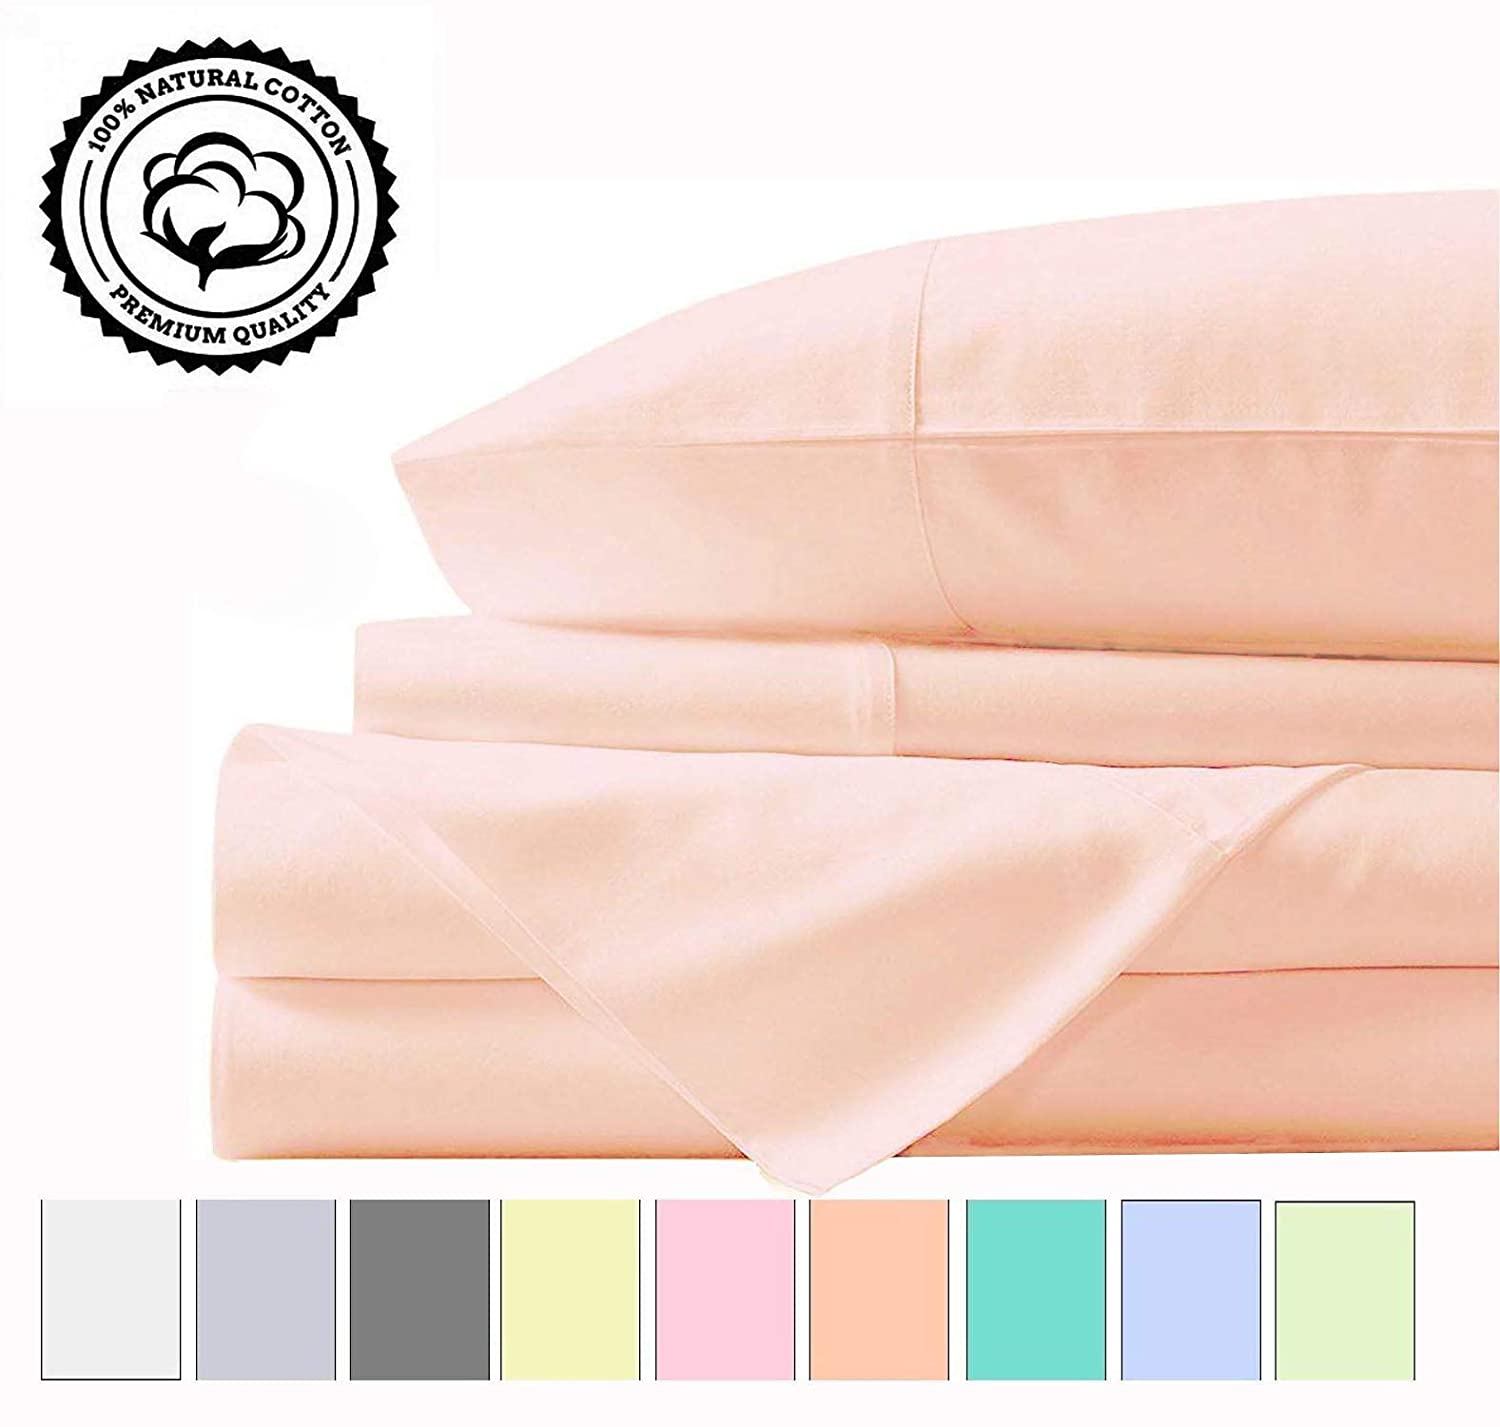 LINENWALAS 100% Cotton Bed Sheet - 800 Thread Count Deep Pocket 4 Piece Sheets | Silk Like Soft, Hypoallergenic, Breathable & Cooling Sateen | Hotel Luxury Bedsheets Deal (King, Peach)